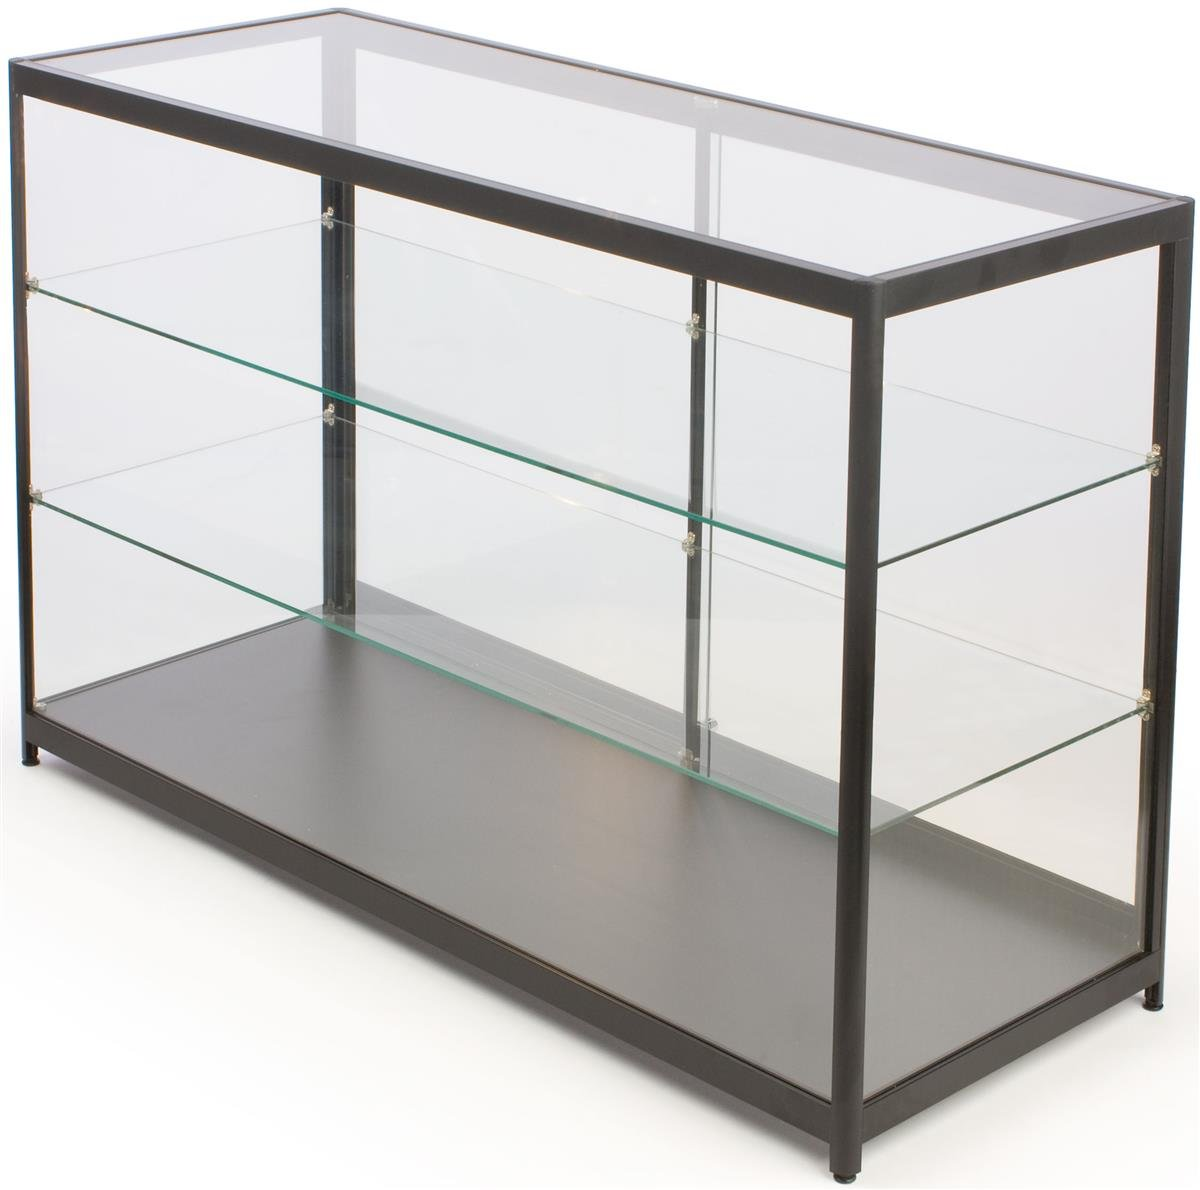 Free-Standing Glass Display Case, Framed in Black Aluminum, with Locking Sliding Glass Doors